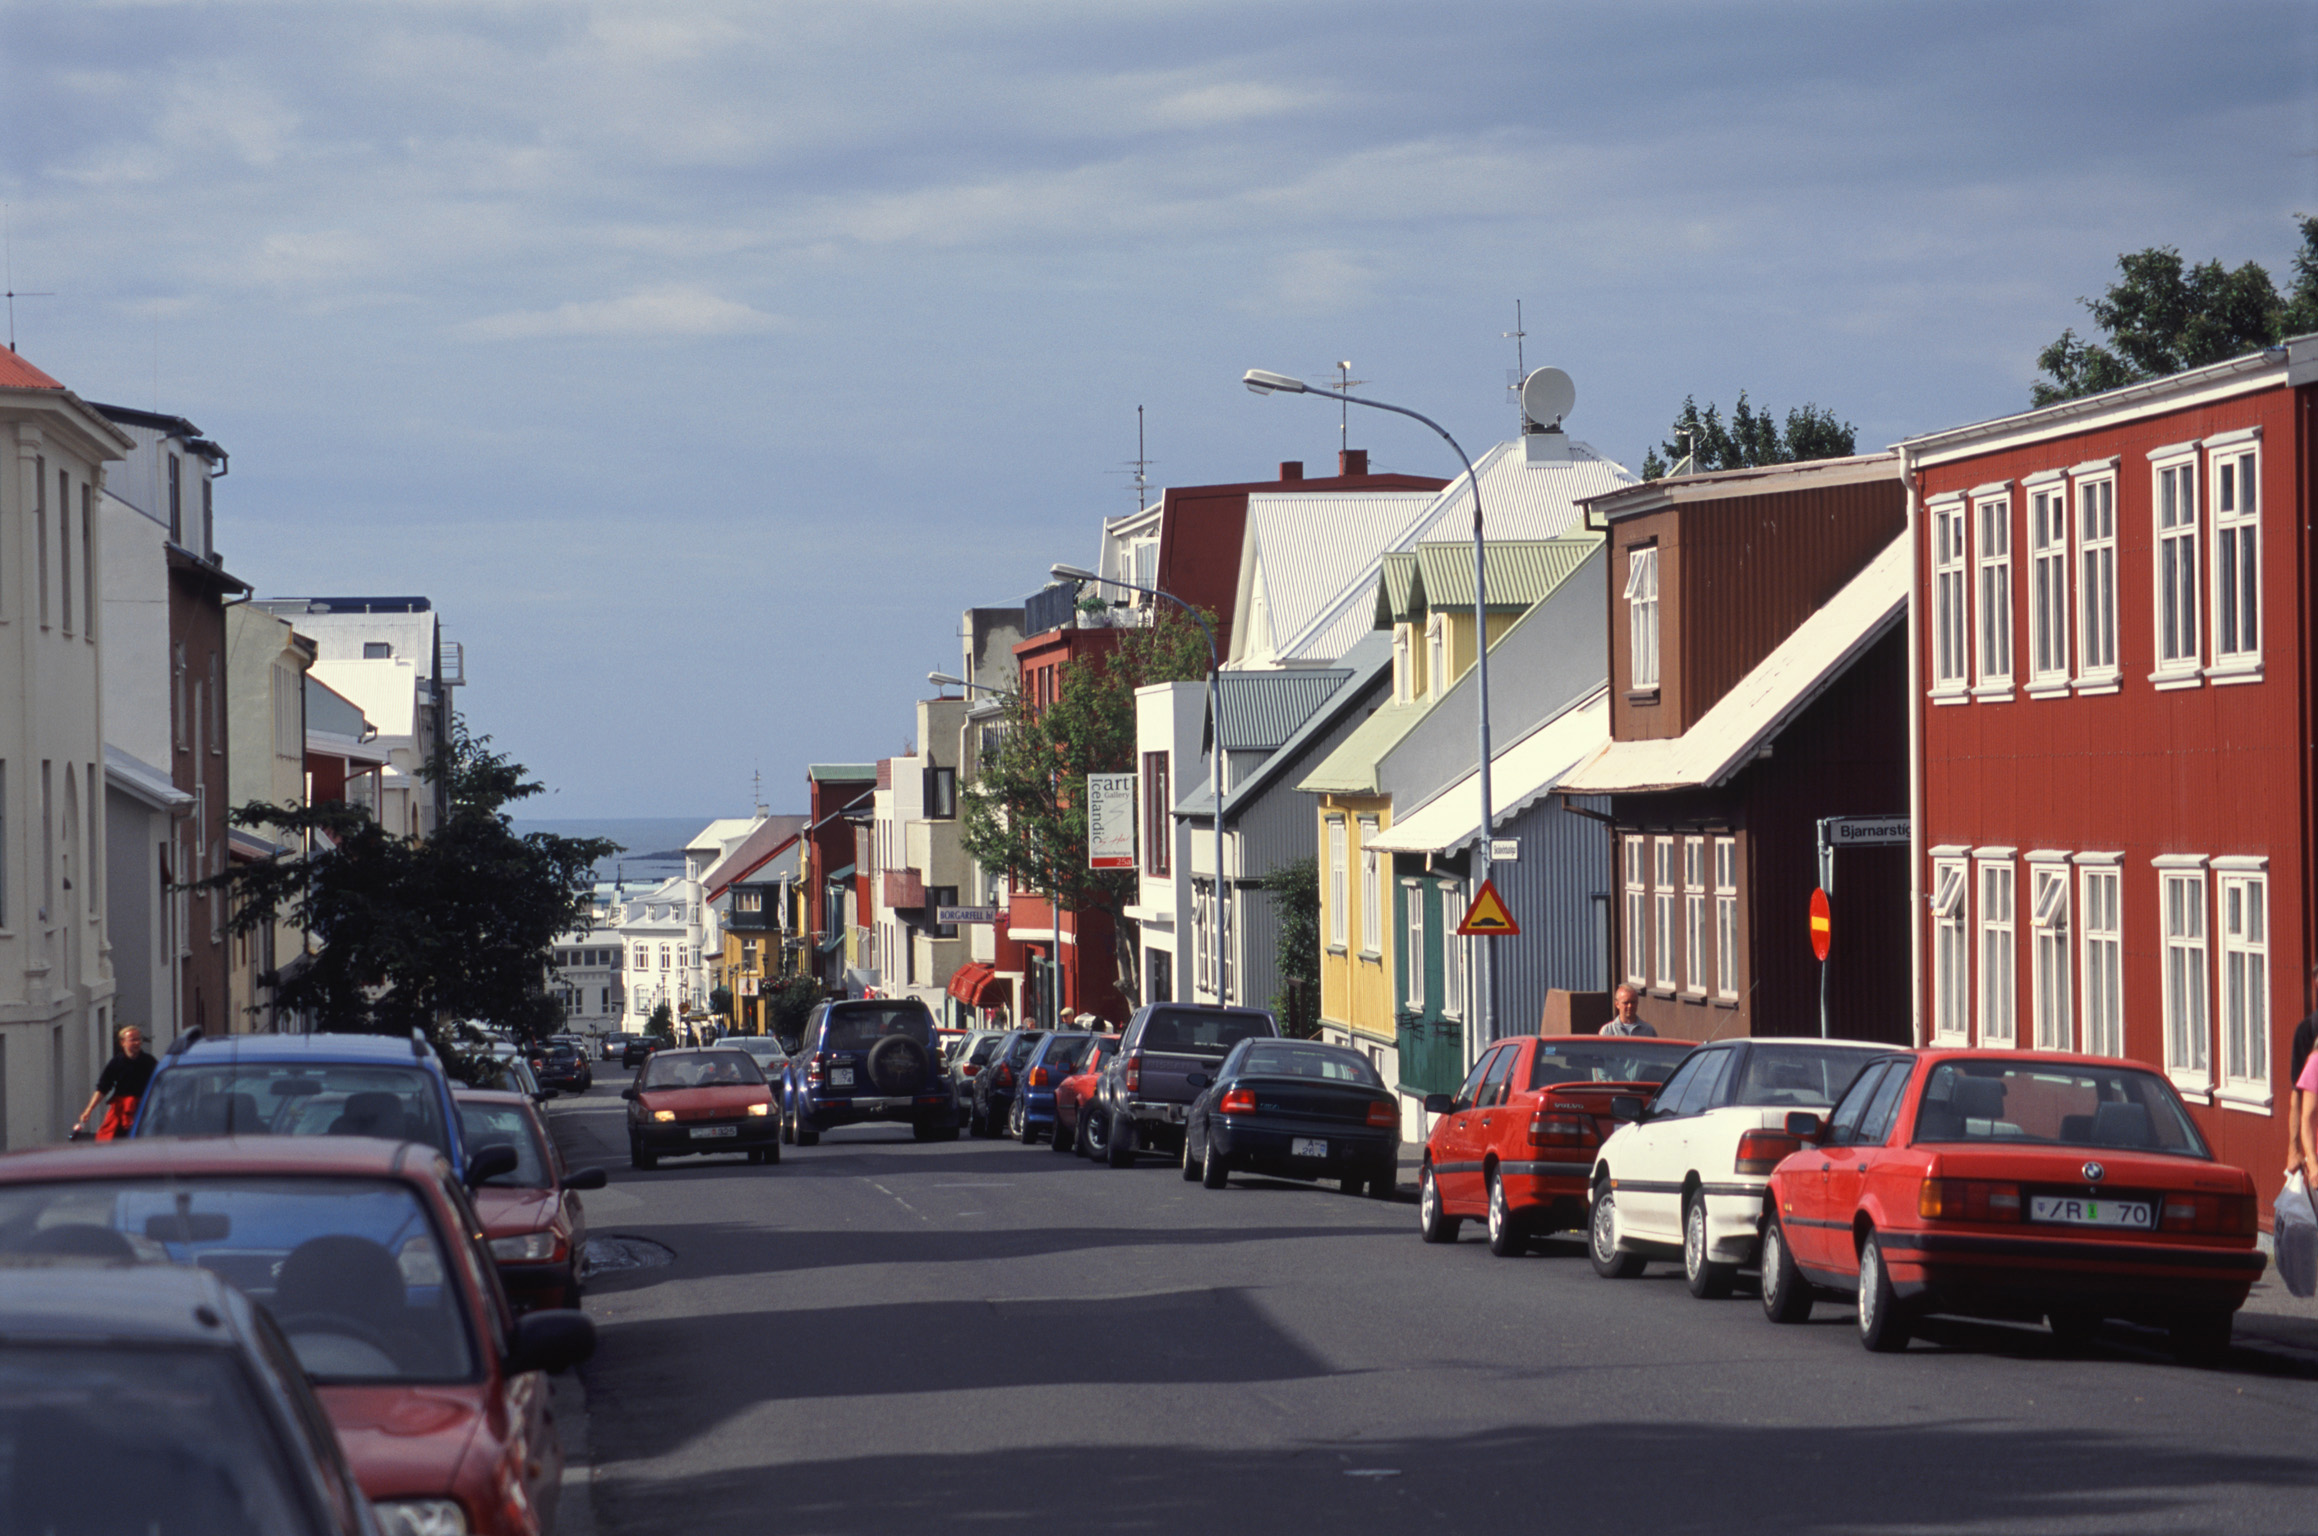 Street scene in Reykjavik, Iceland with traditional architecture and rows of parked cars on a sunny day